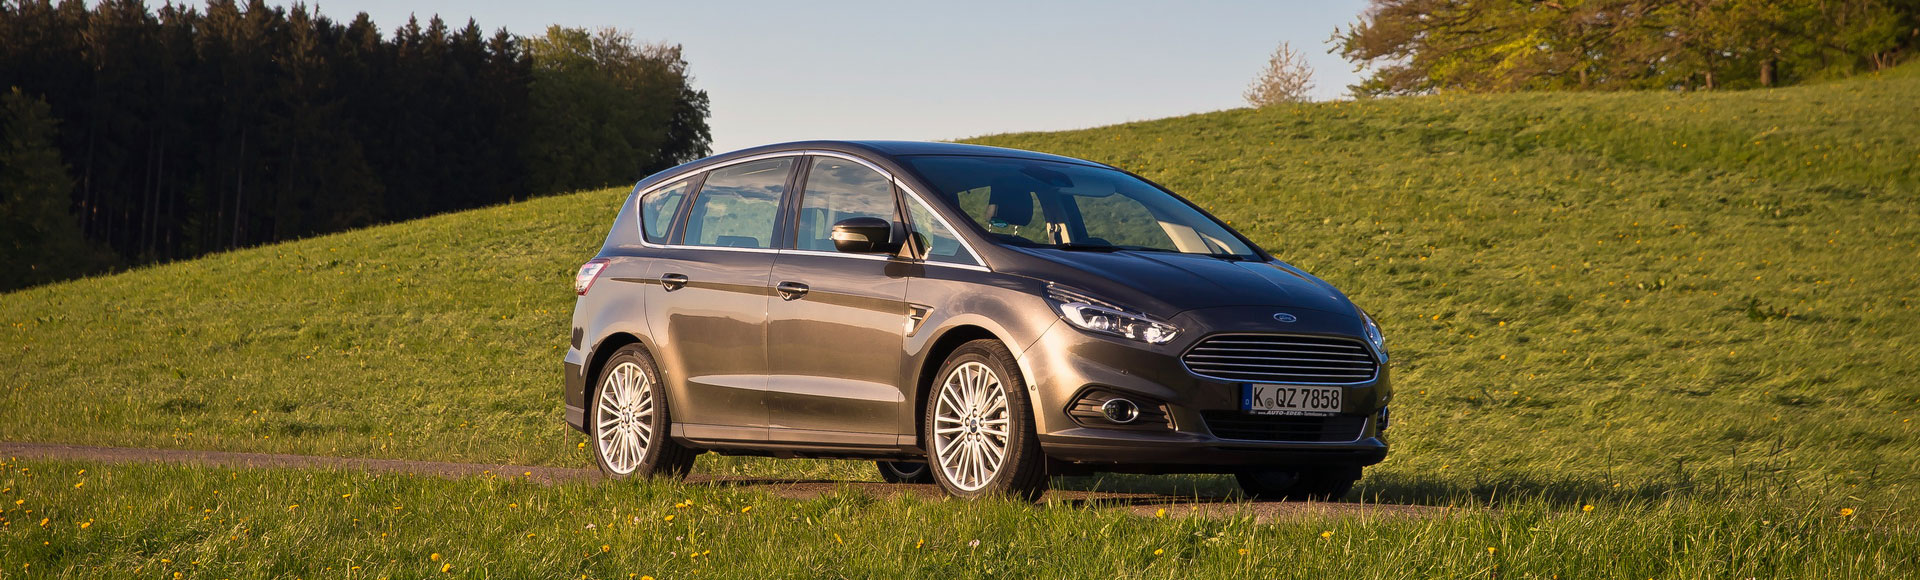 Ford S Max 2016 1358 Sommer